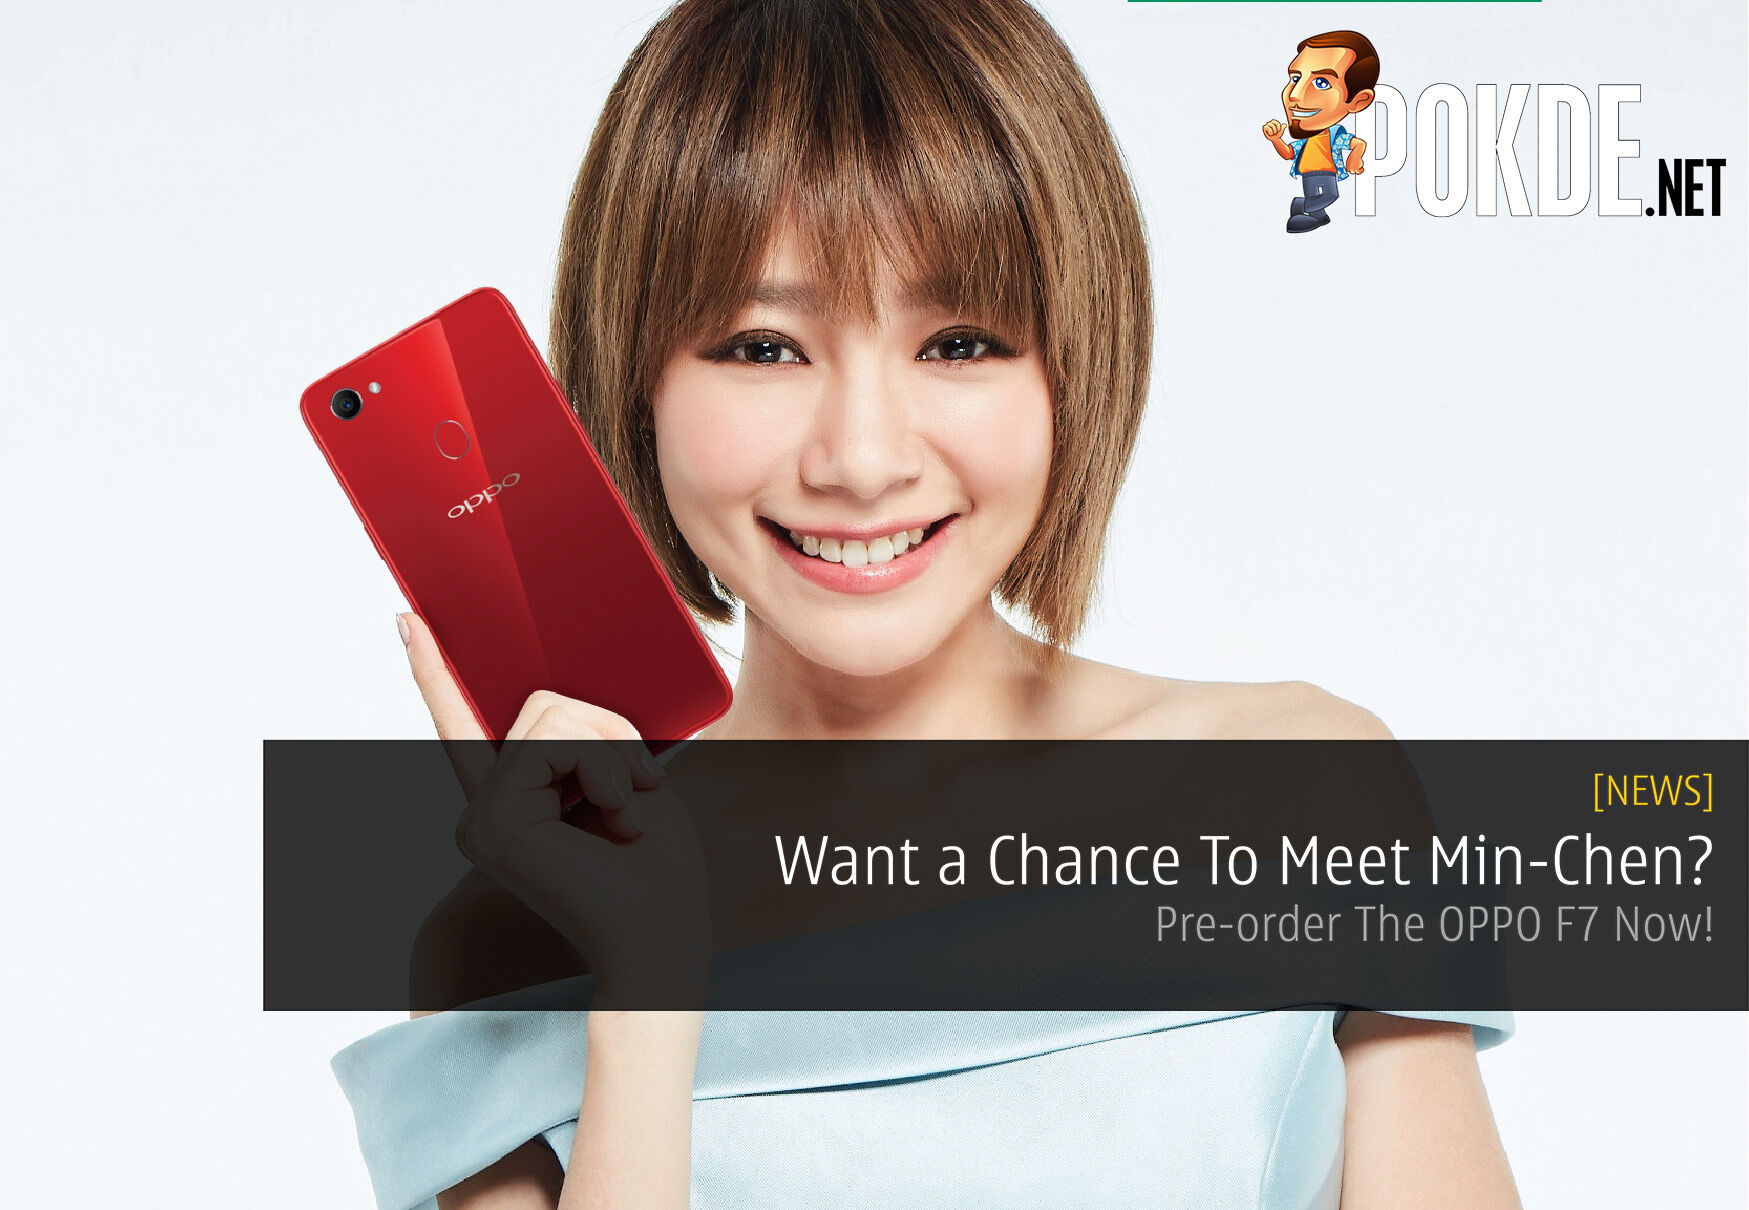 Want a Chance To Meet Min-Chen? Pre-order The OPPO F7 Now! 25